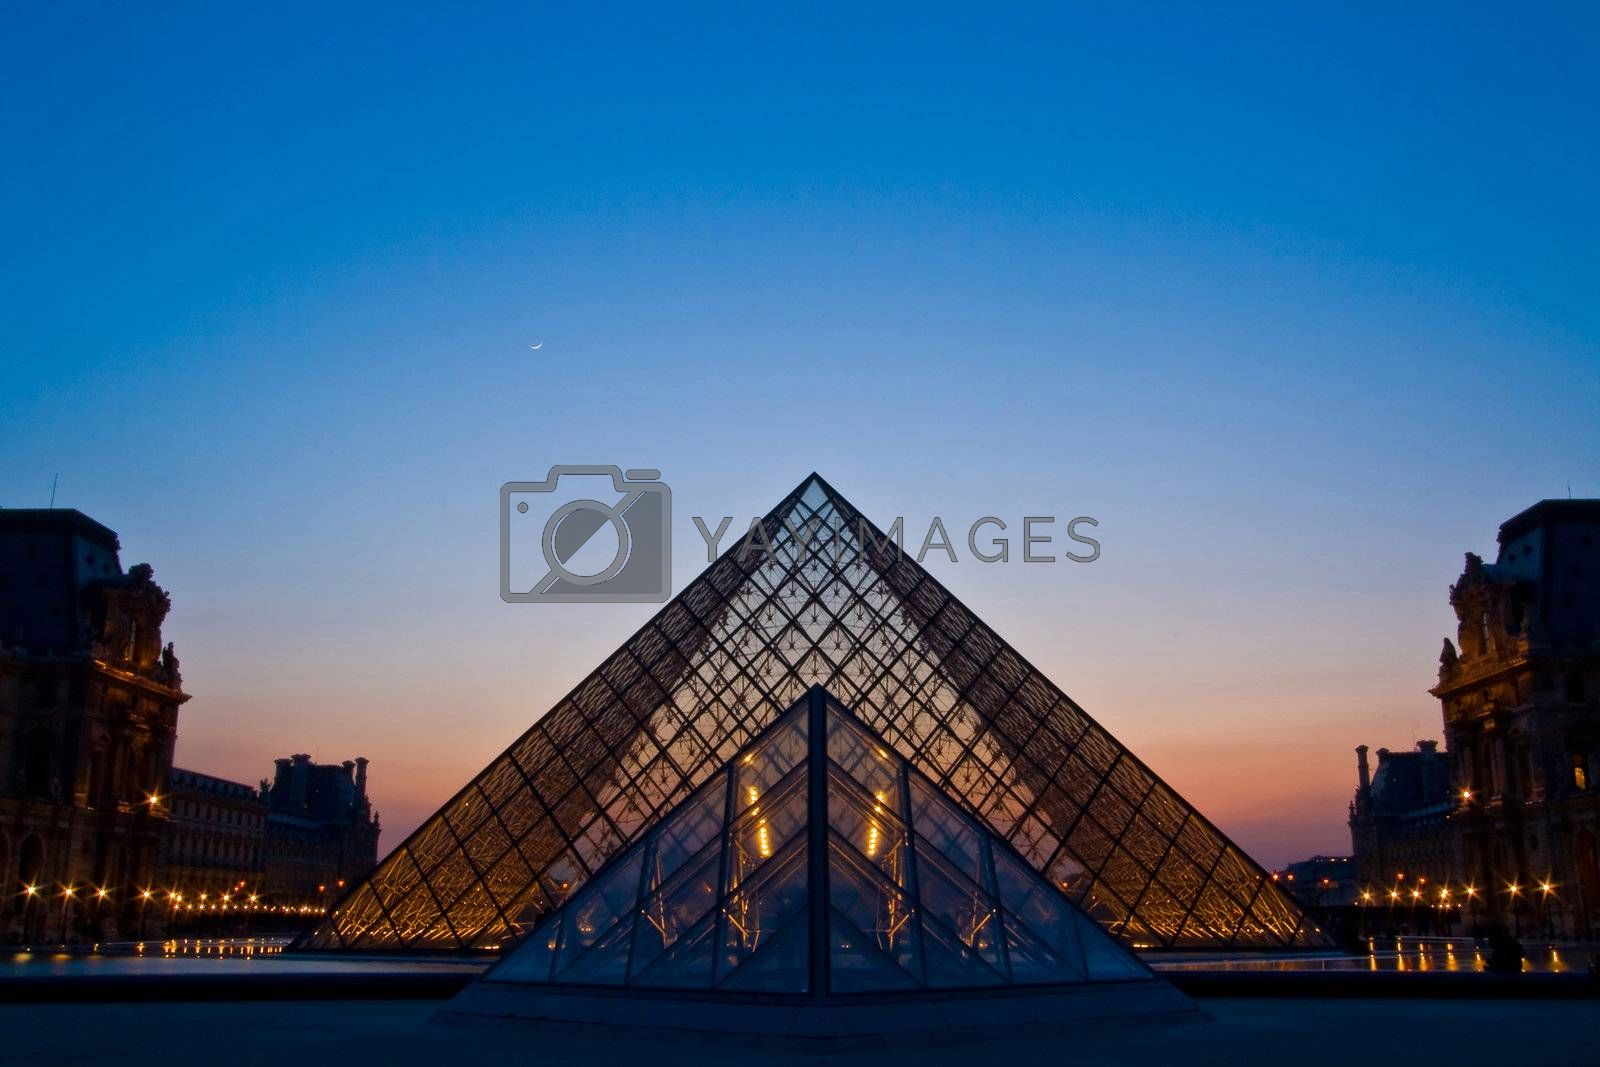 PARIS - APRIL 16: Double of Louvre pyramid shines at dusk during the Summer Exhibition April 16, 2010 in Paris. This is one of the most popular tourist destinations in France.